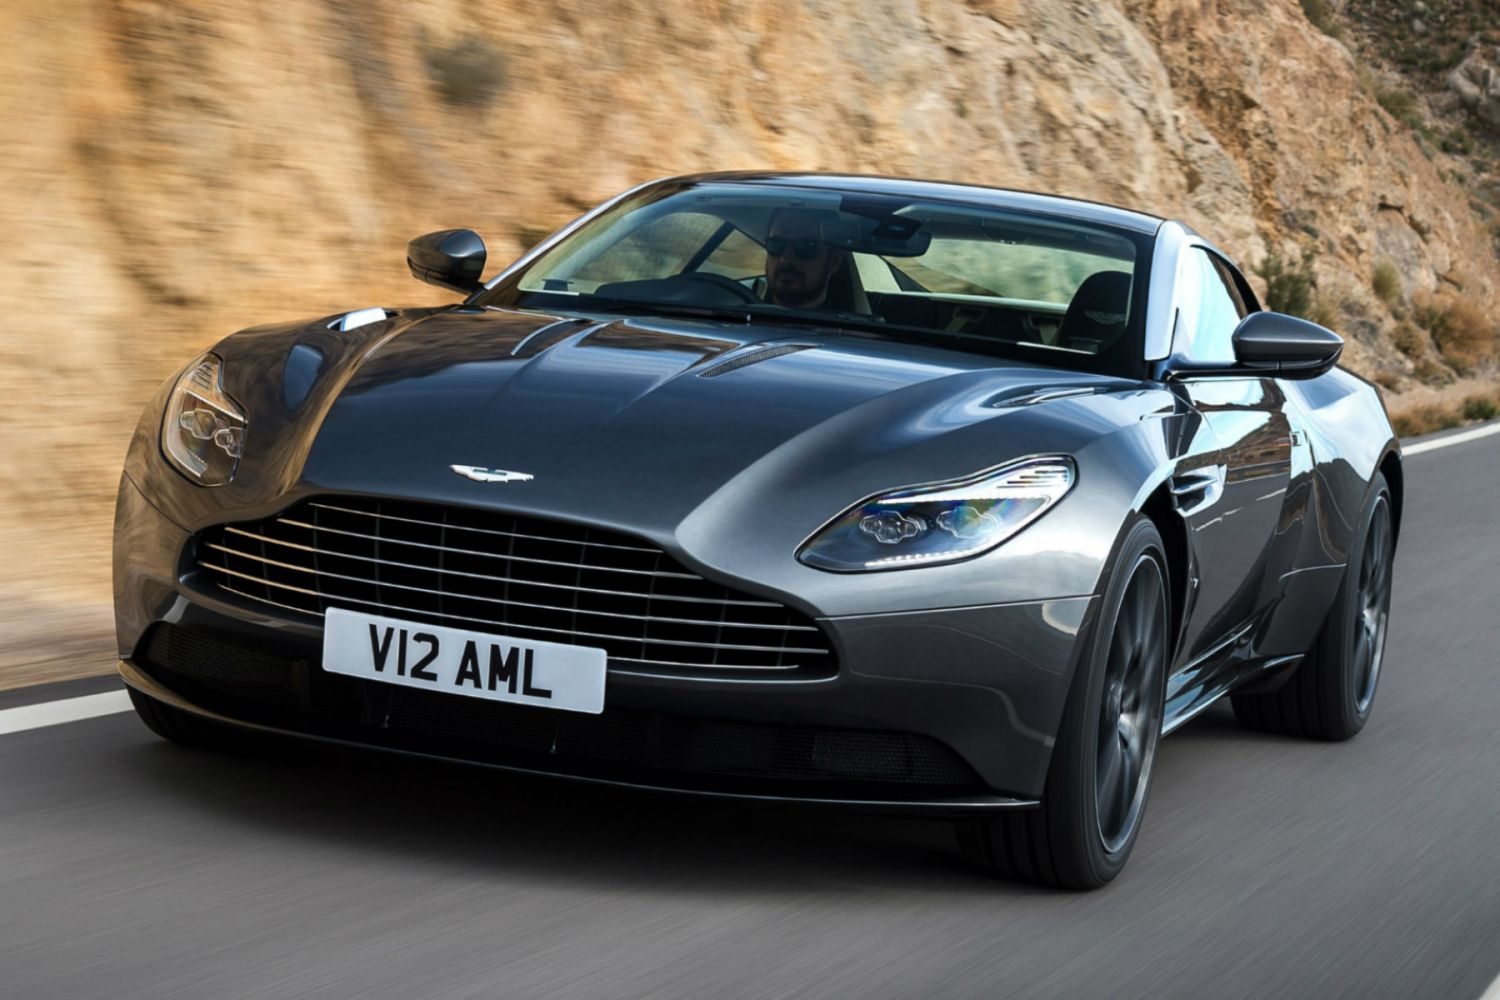 Man steals Aston Martin DB11 from factory after night out with friends